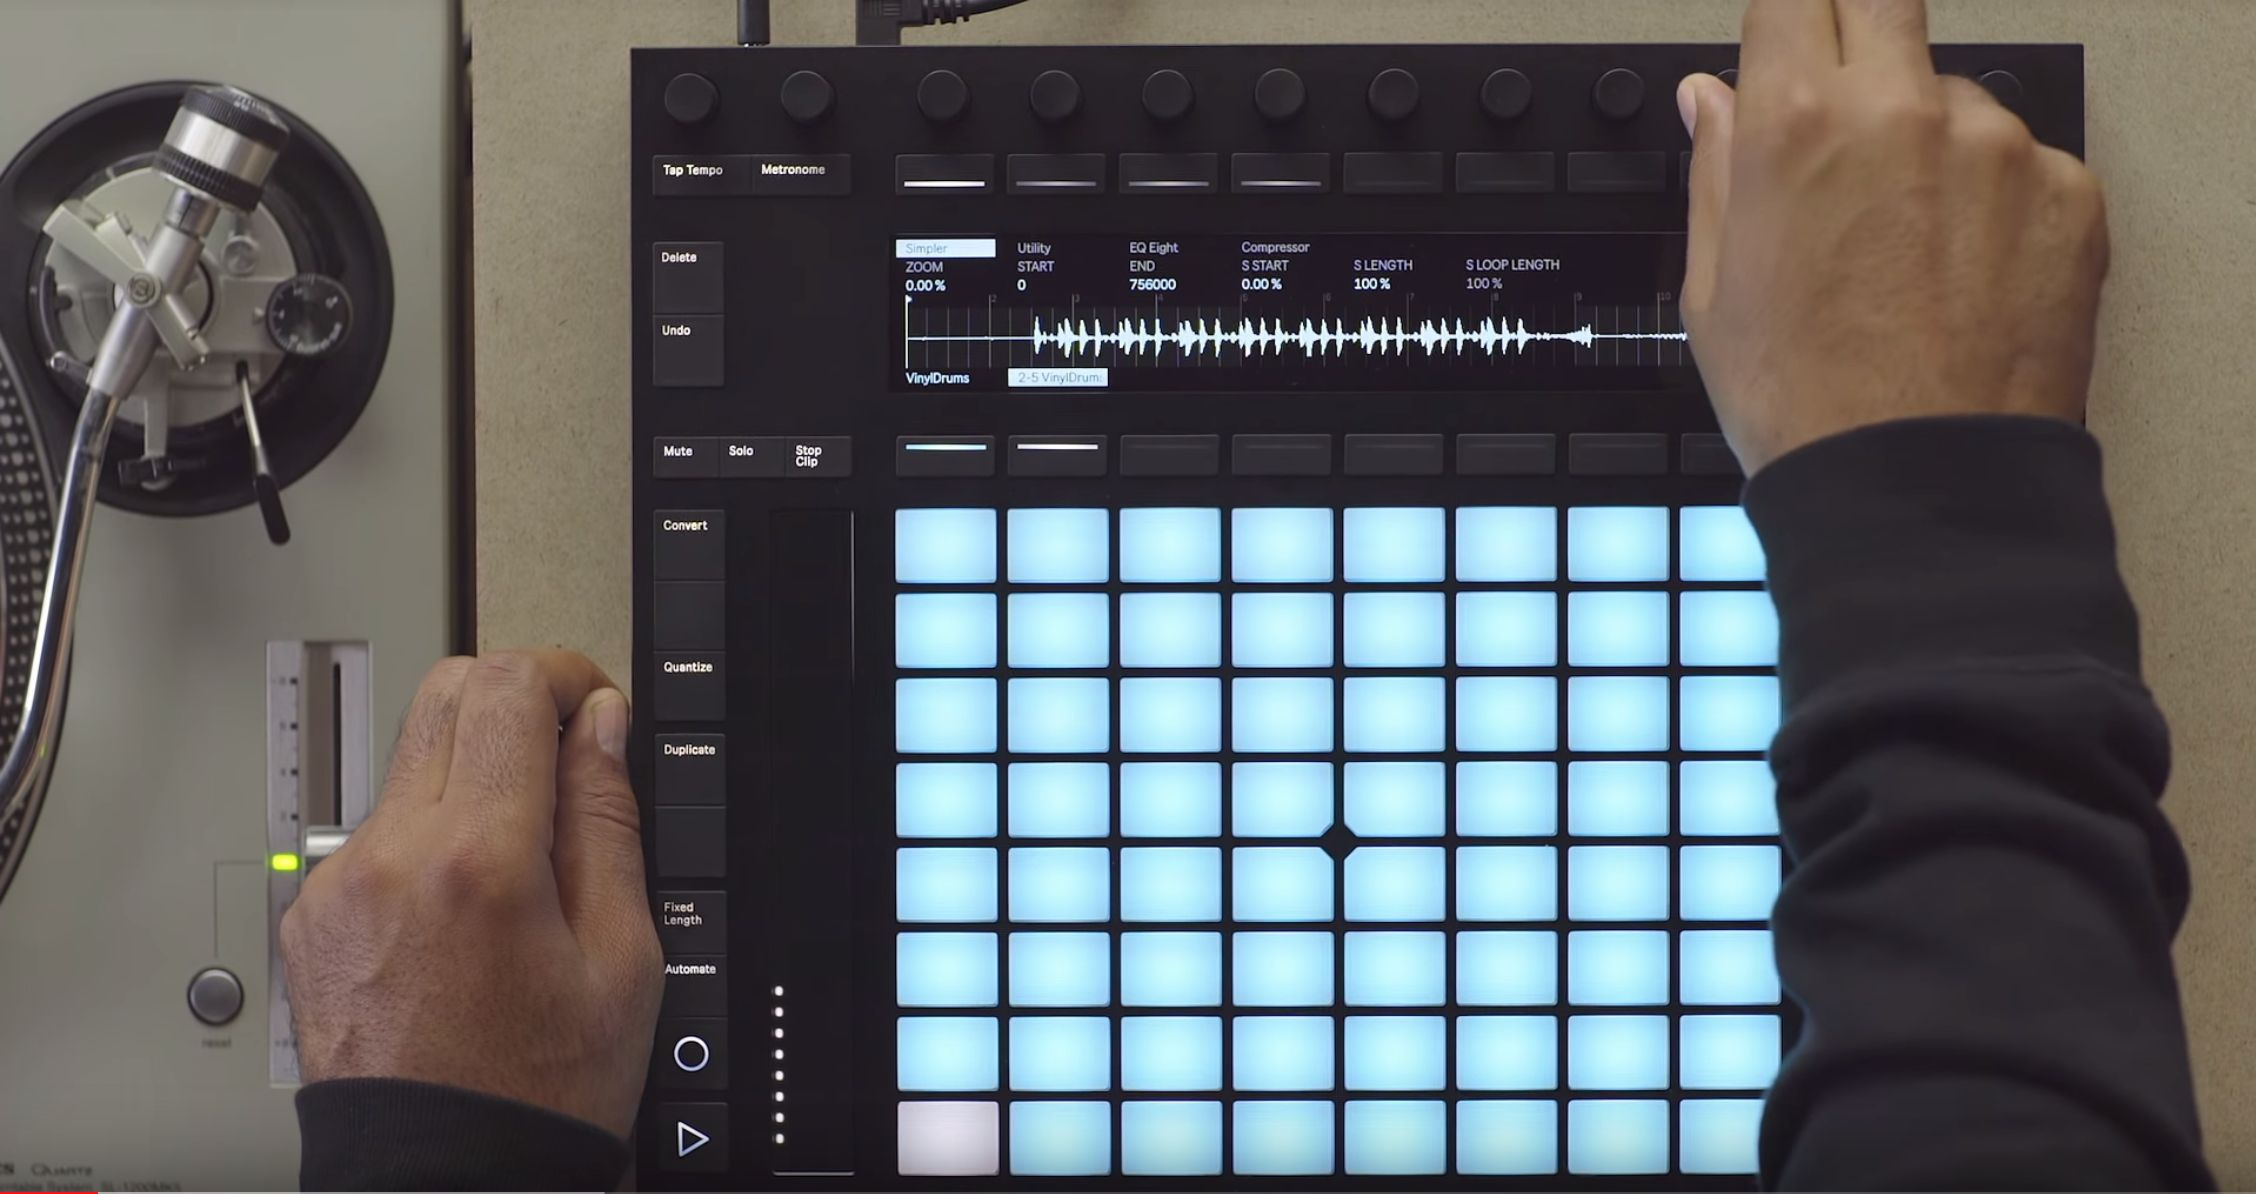 Ableton Push 2. Фото: Ableton/YouTube